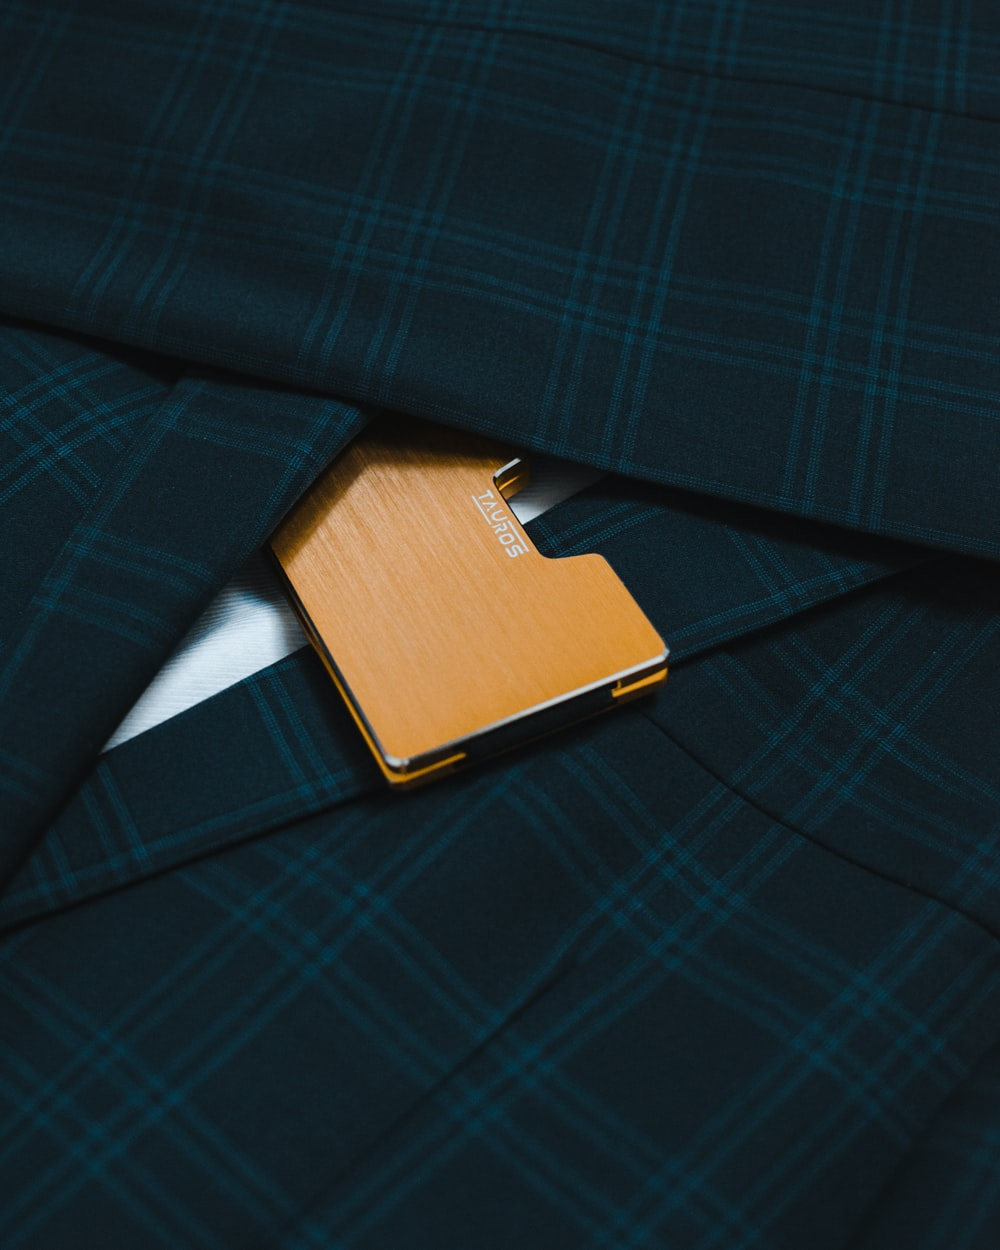 brown leather flip cover on blue and black plaid textile